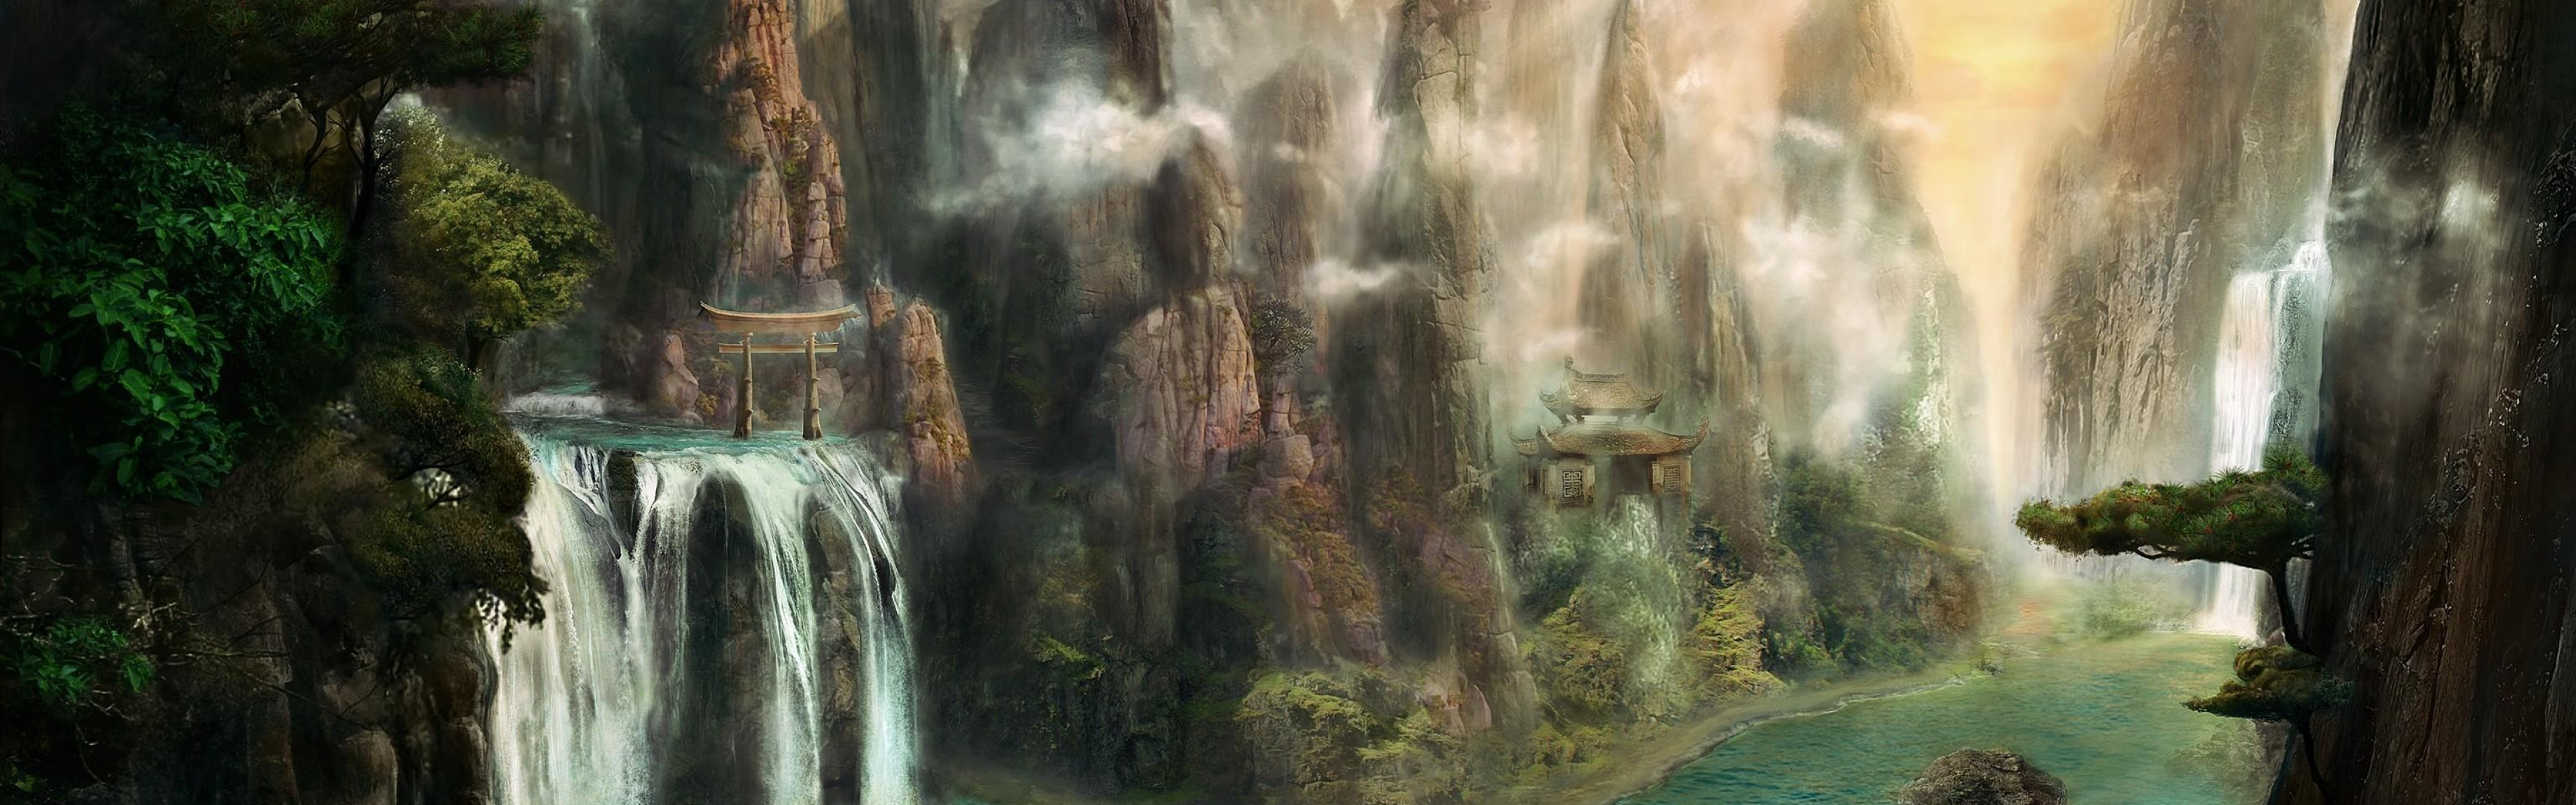 3840x1200 Wallpaper cliffs waterfalls mist nature 3840x1200